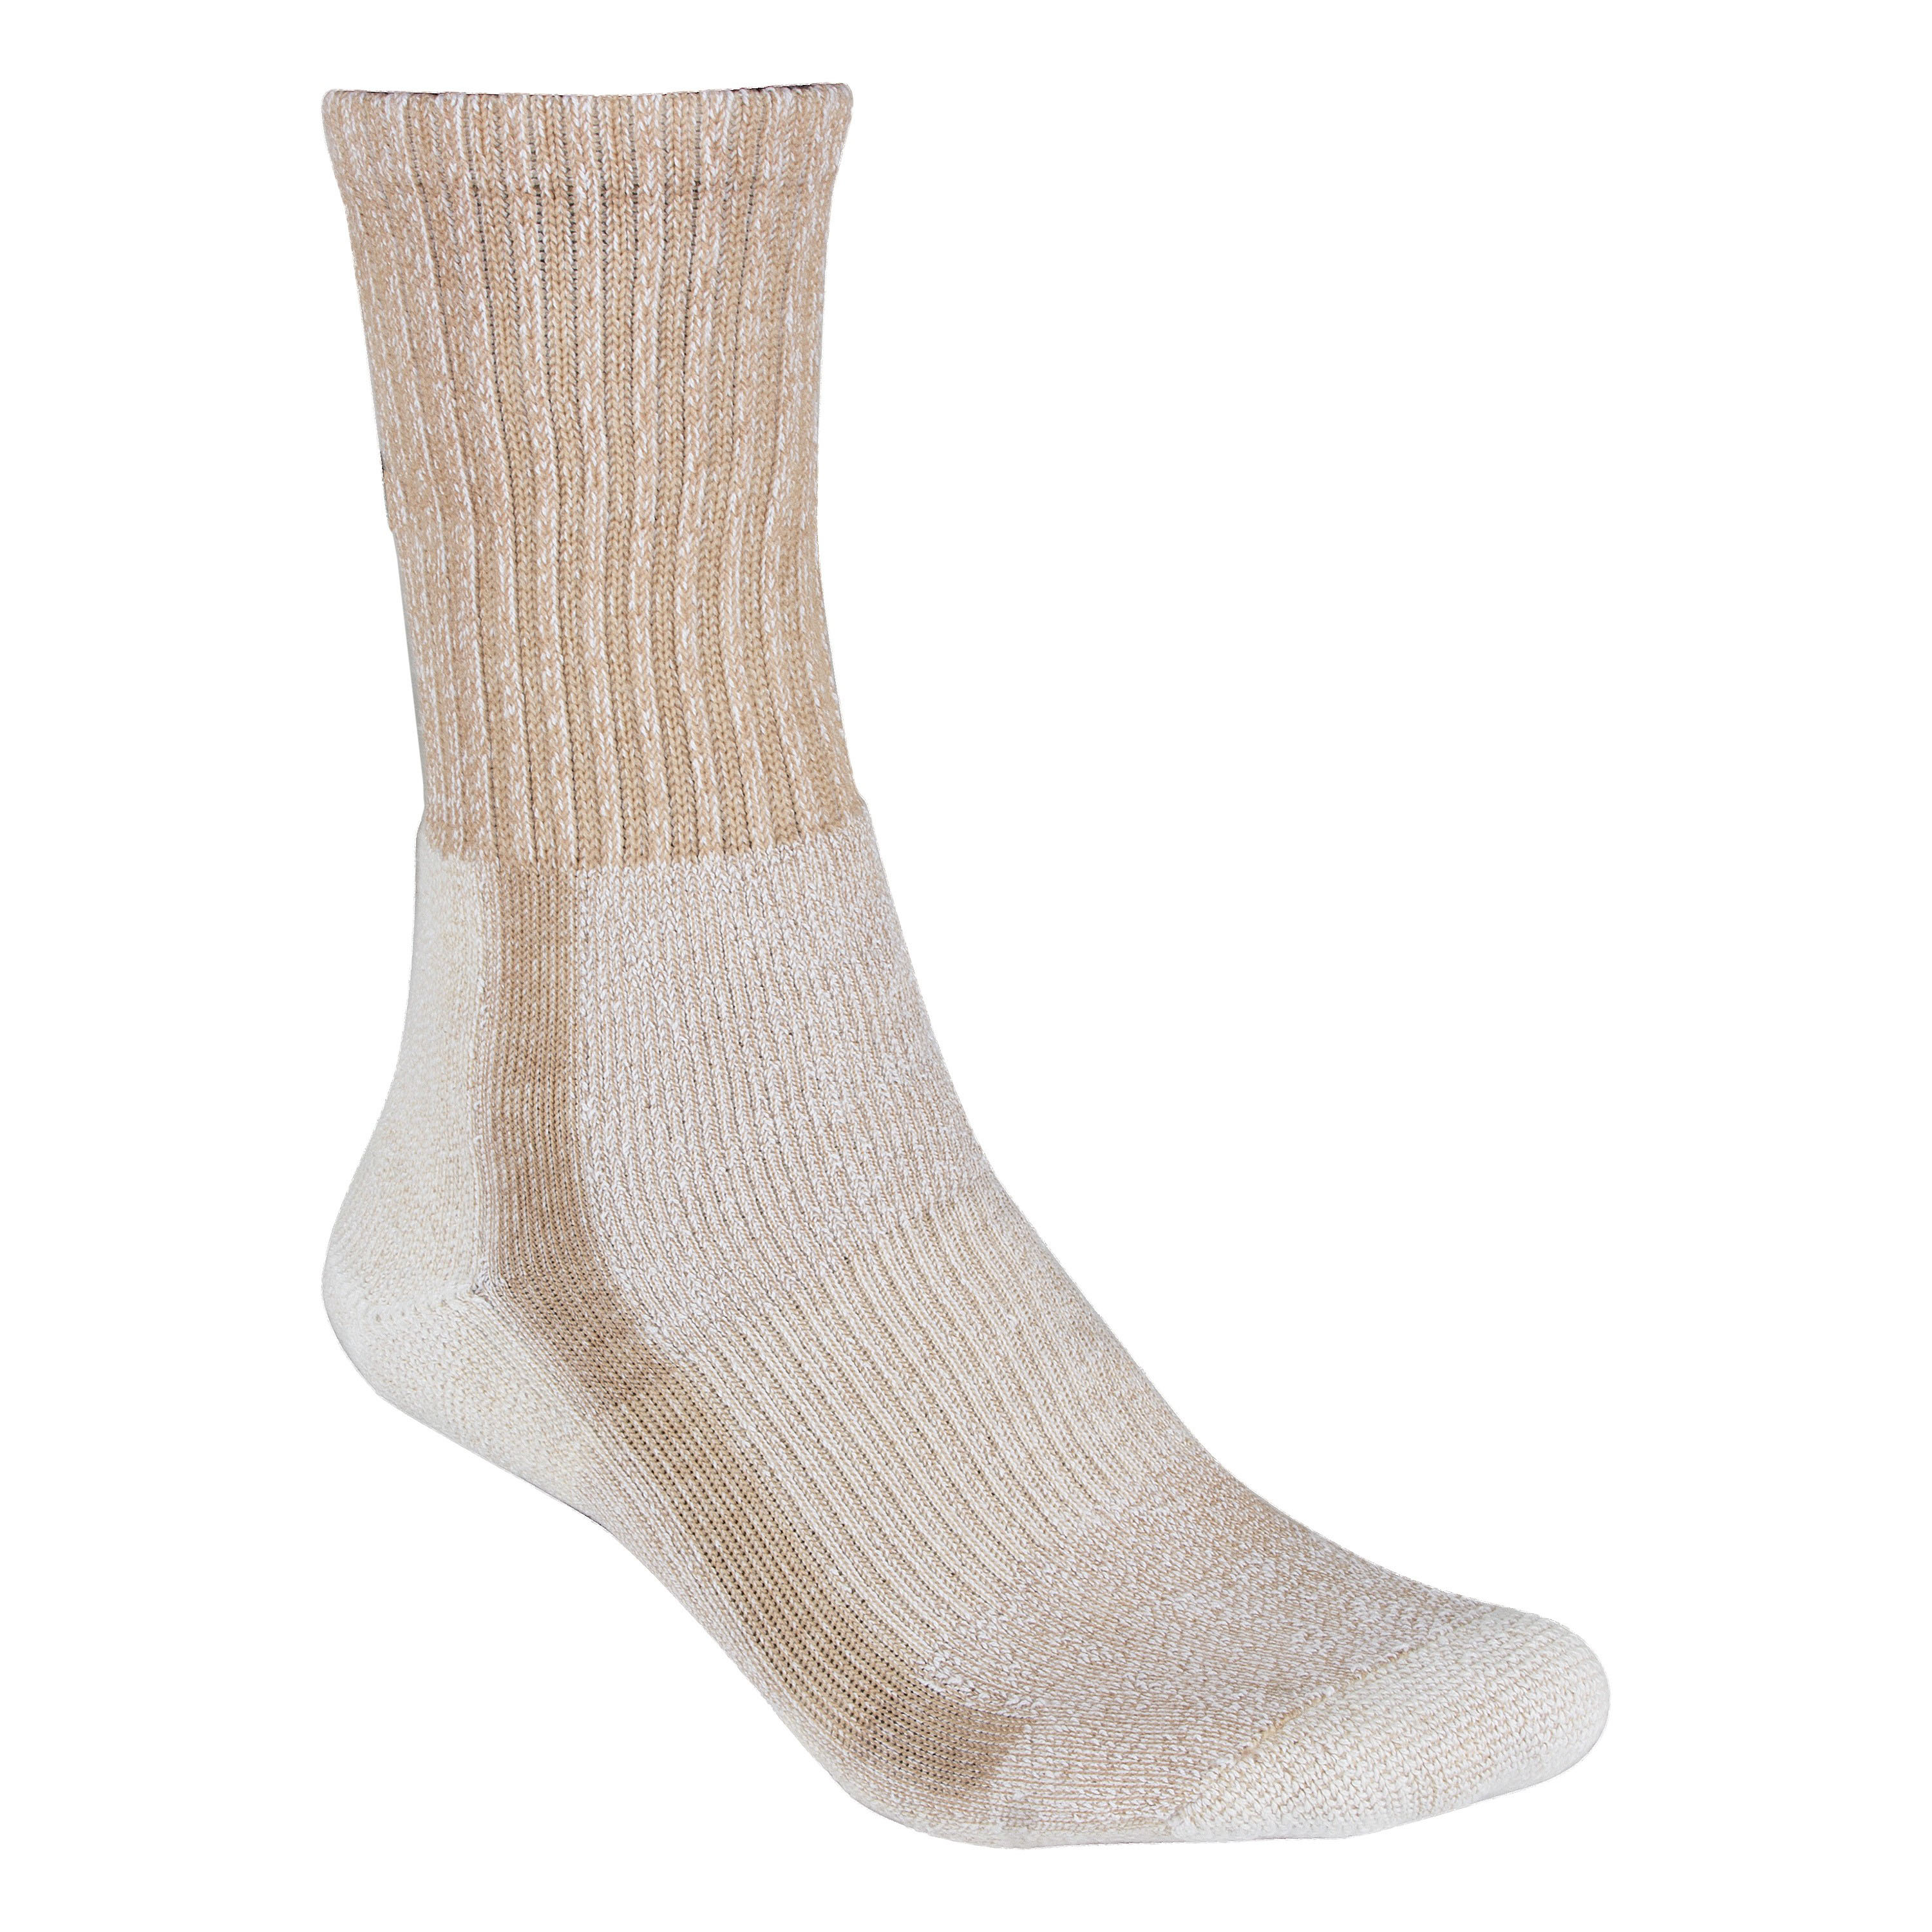 Thorlo Socken Desert Boot Moderate Cushion desert sand